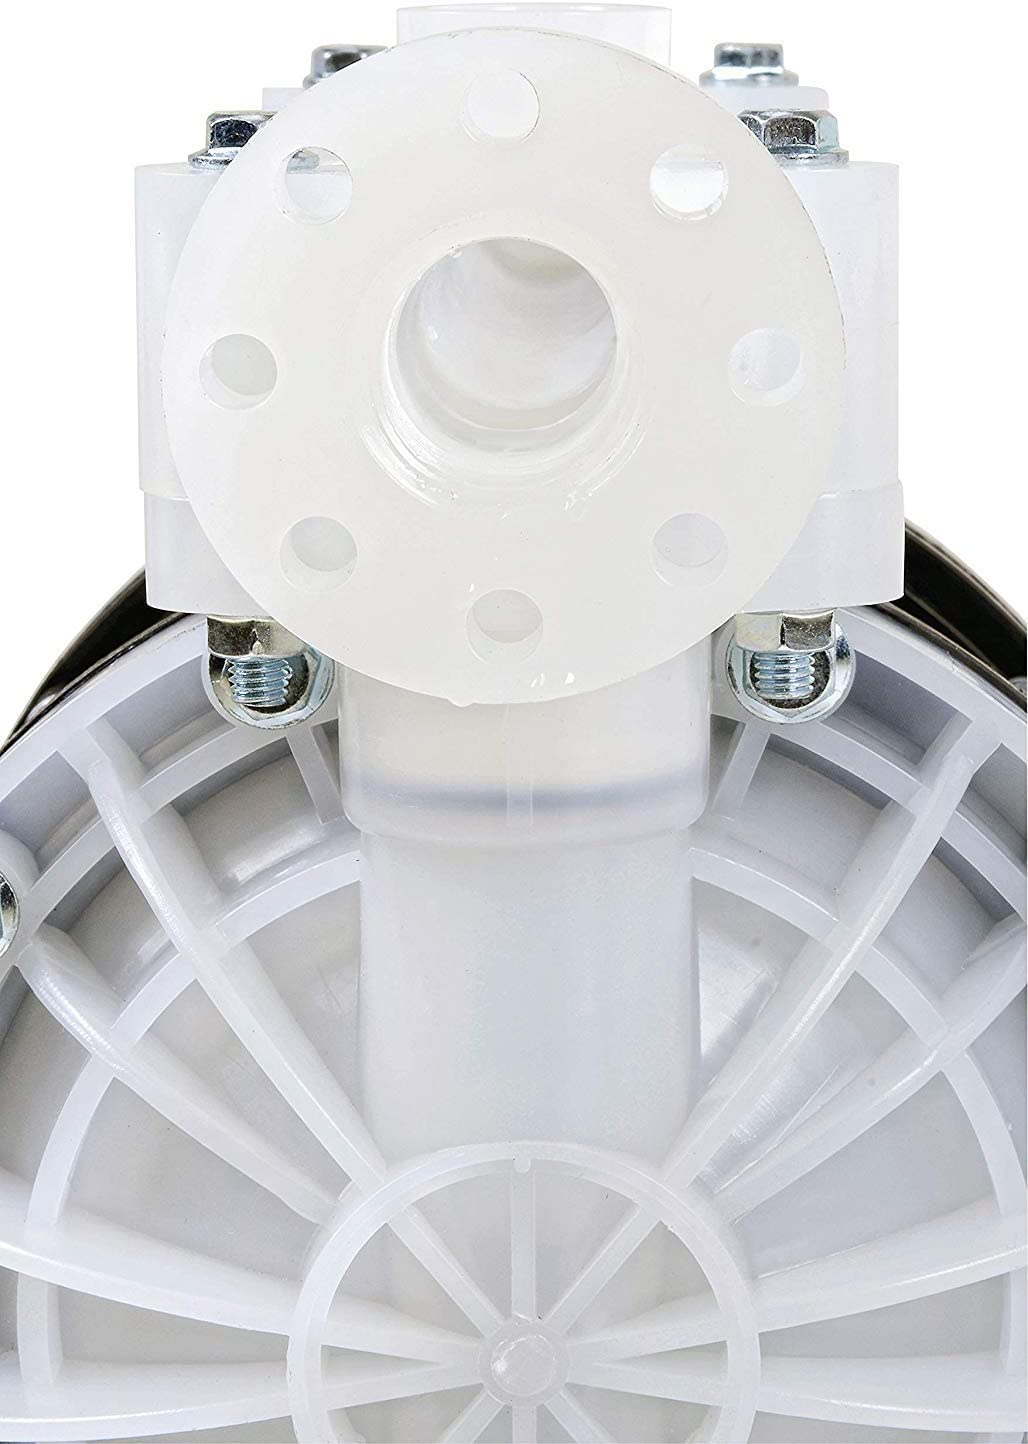 24GPM Windscreen /& Similar Chemicals Fuelworks Double Diaphragm Transfer Pump 1 FPM//FKM 90LPM Heavy Duty Polypropylene Air Operated Pneumatic for Bio-Diesel